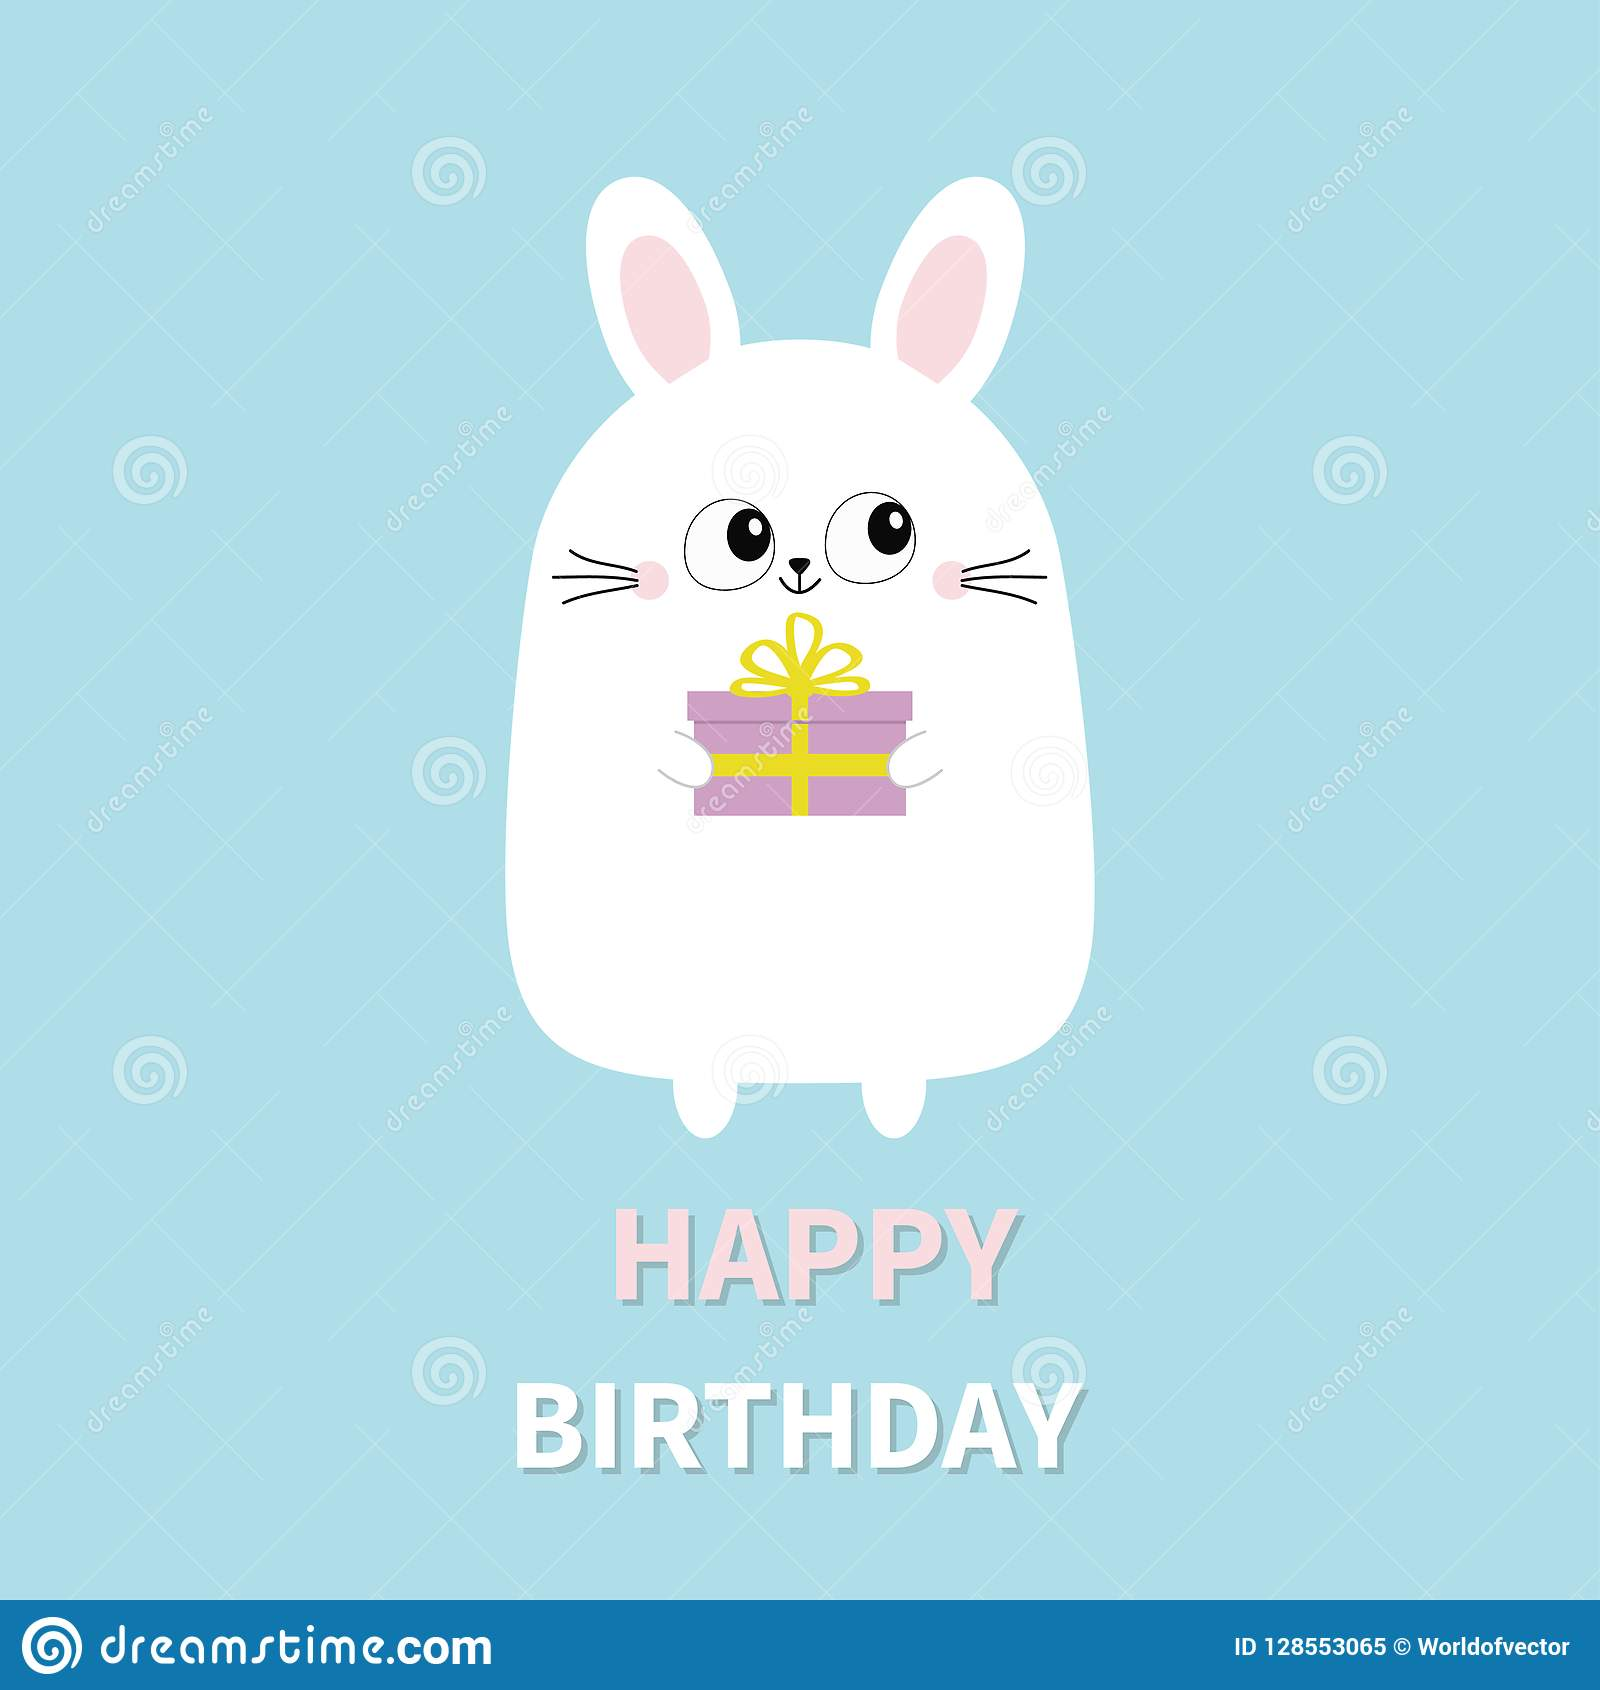 Happy Birthday White Bunny Rabbit Holding Gift Box Funny Head Face Big Eyes Cute Kawaii Cartoon Character Baby Greeting Card Template Blue Background